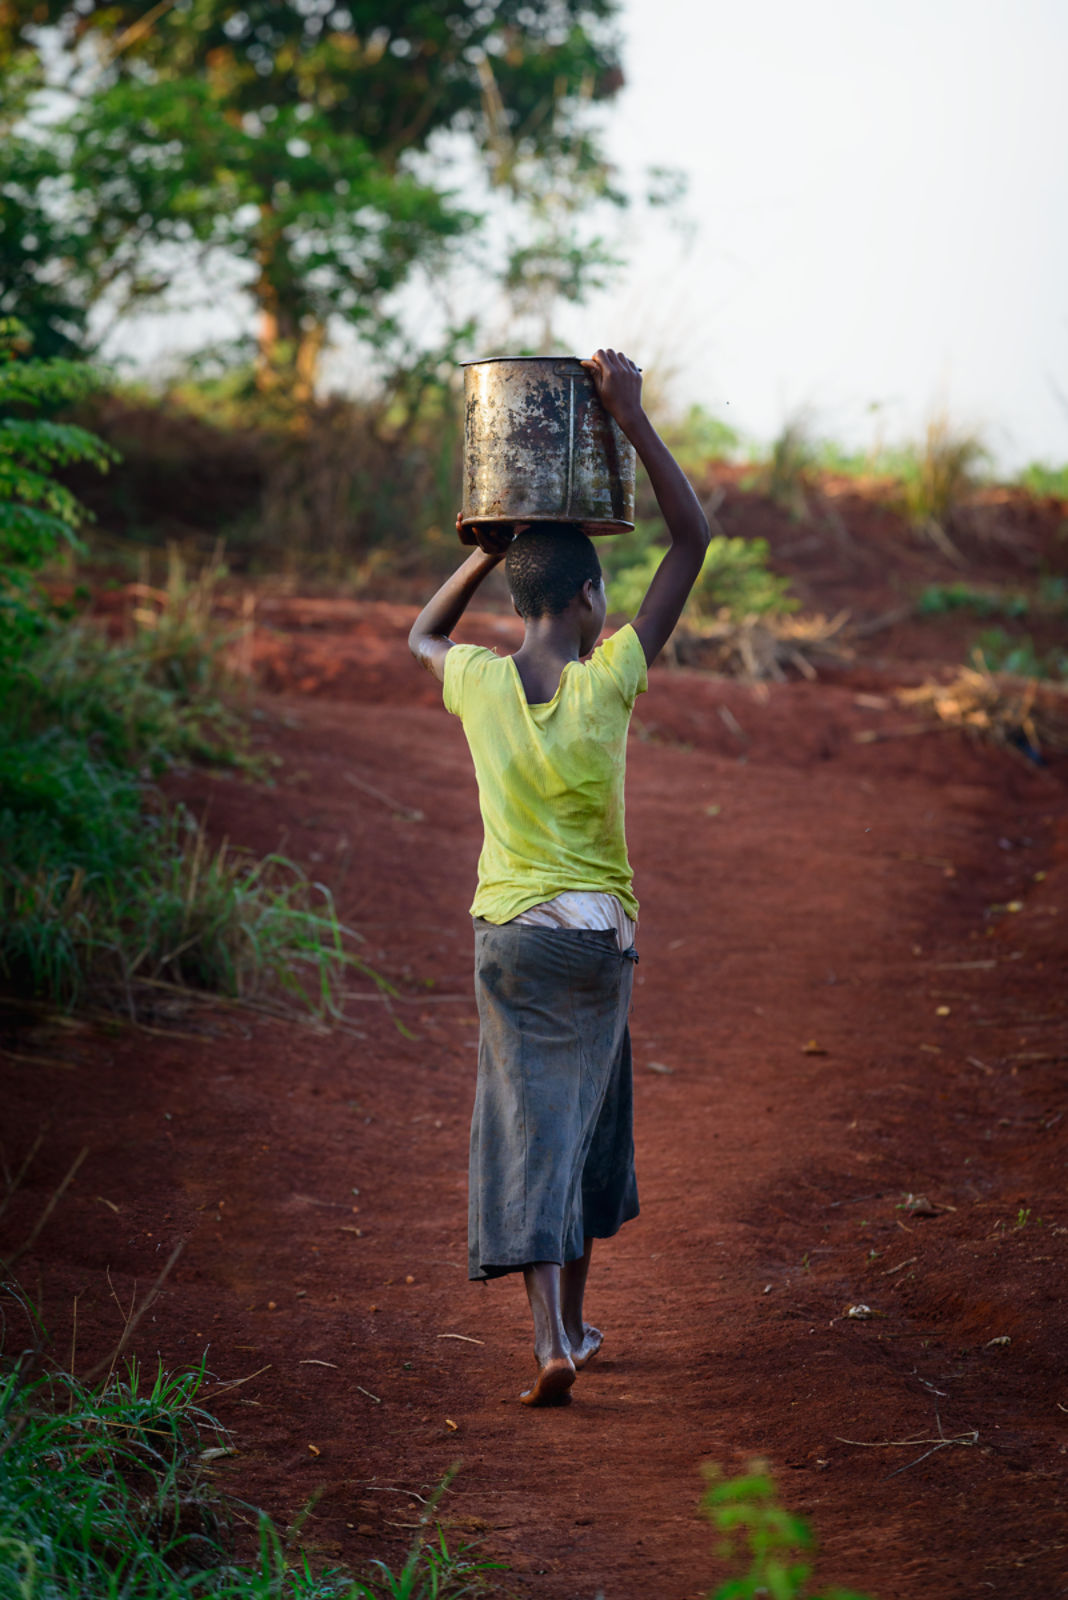 Woman in Water for All's project in Malawi, fetching water.